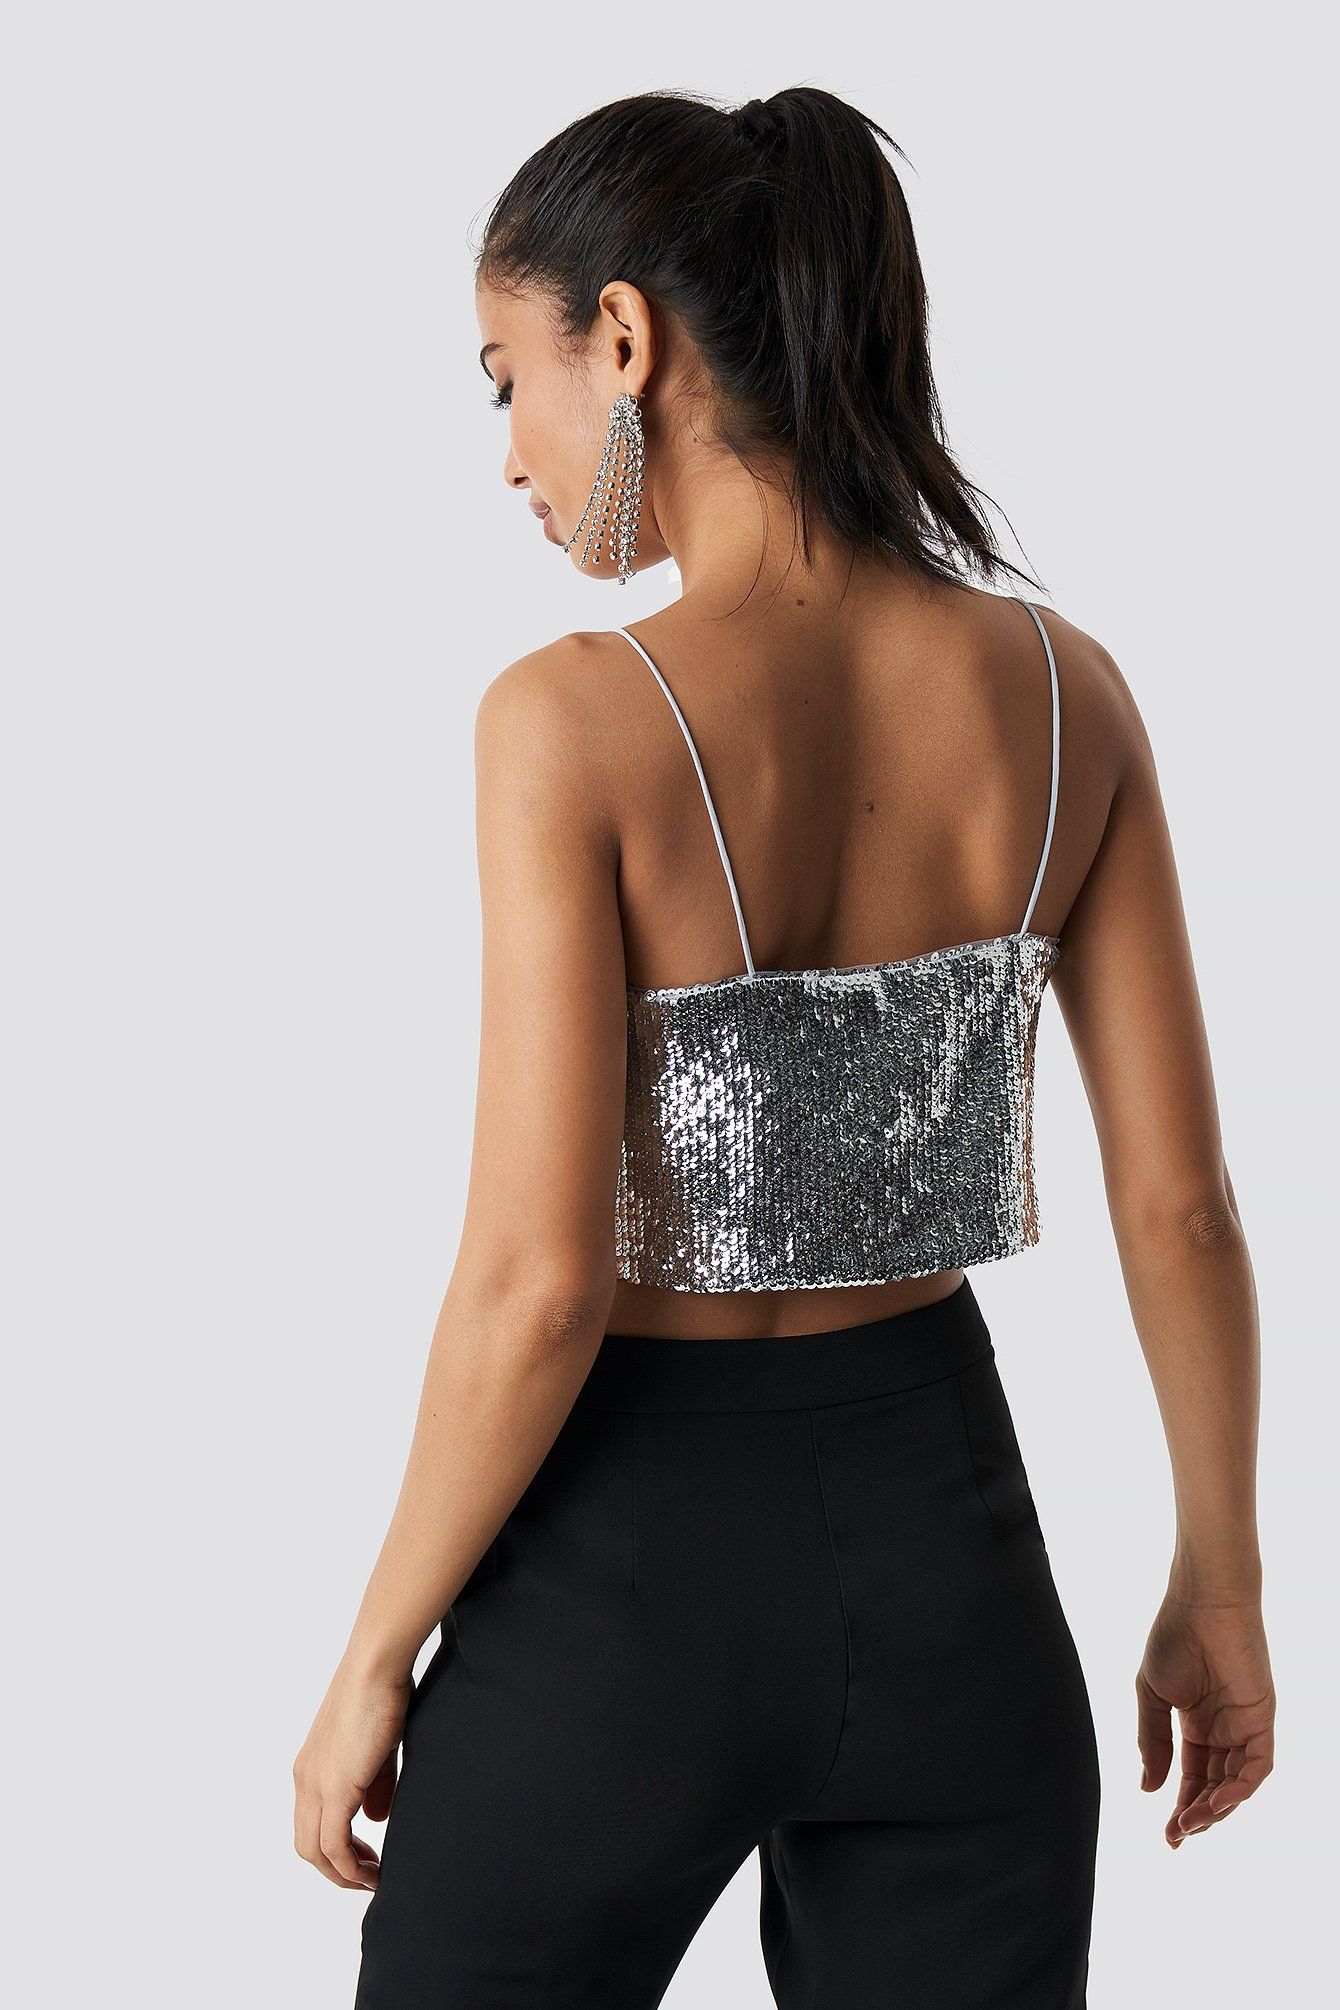 hannalicious x na-kd -  Cropped A-lined Sequin Singlet - Silver